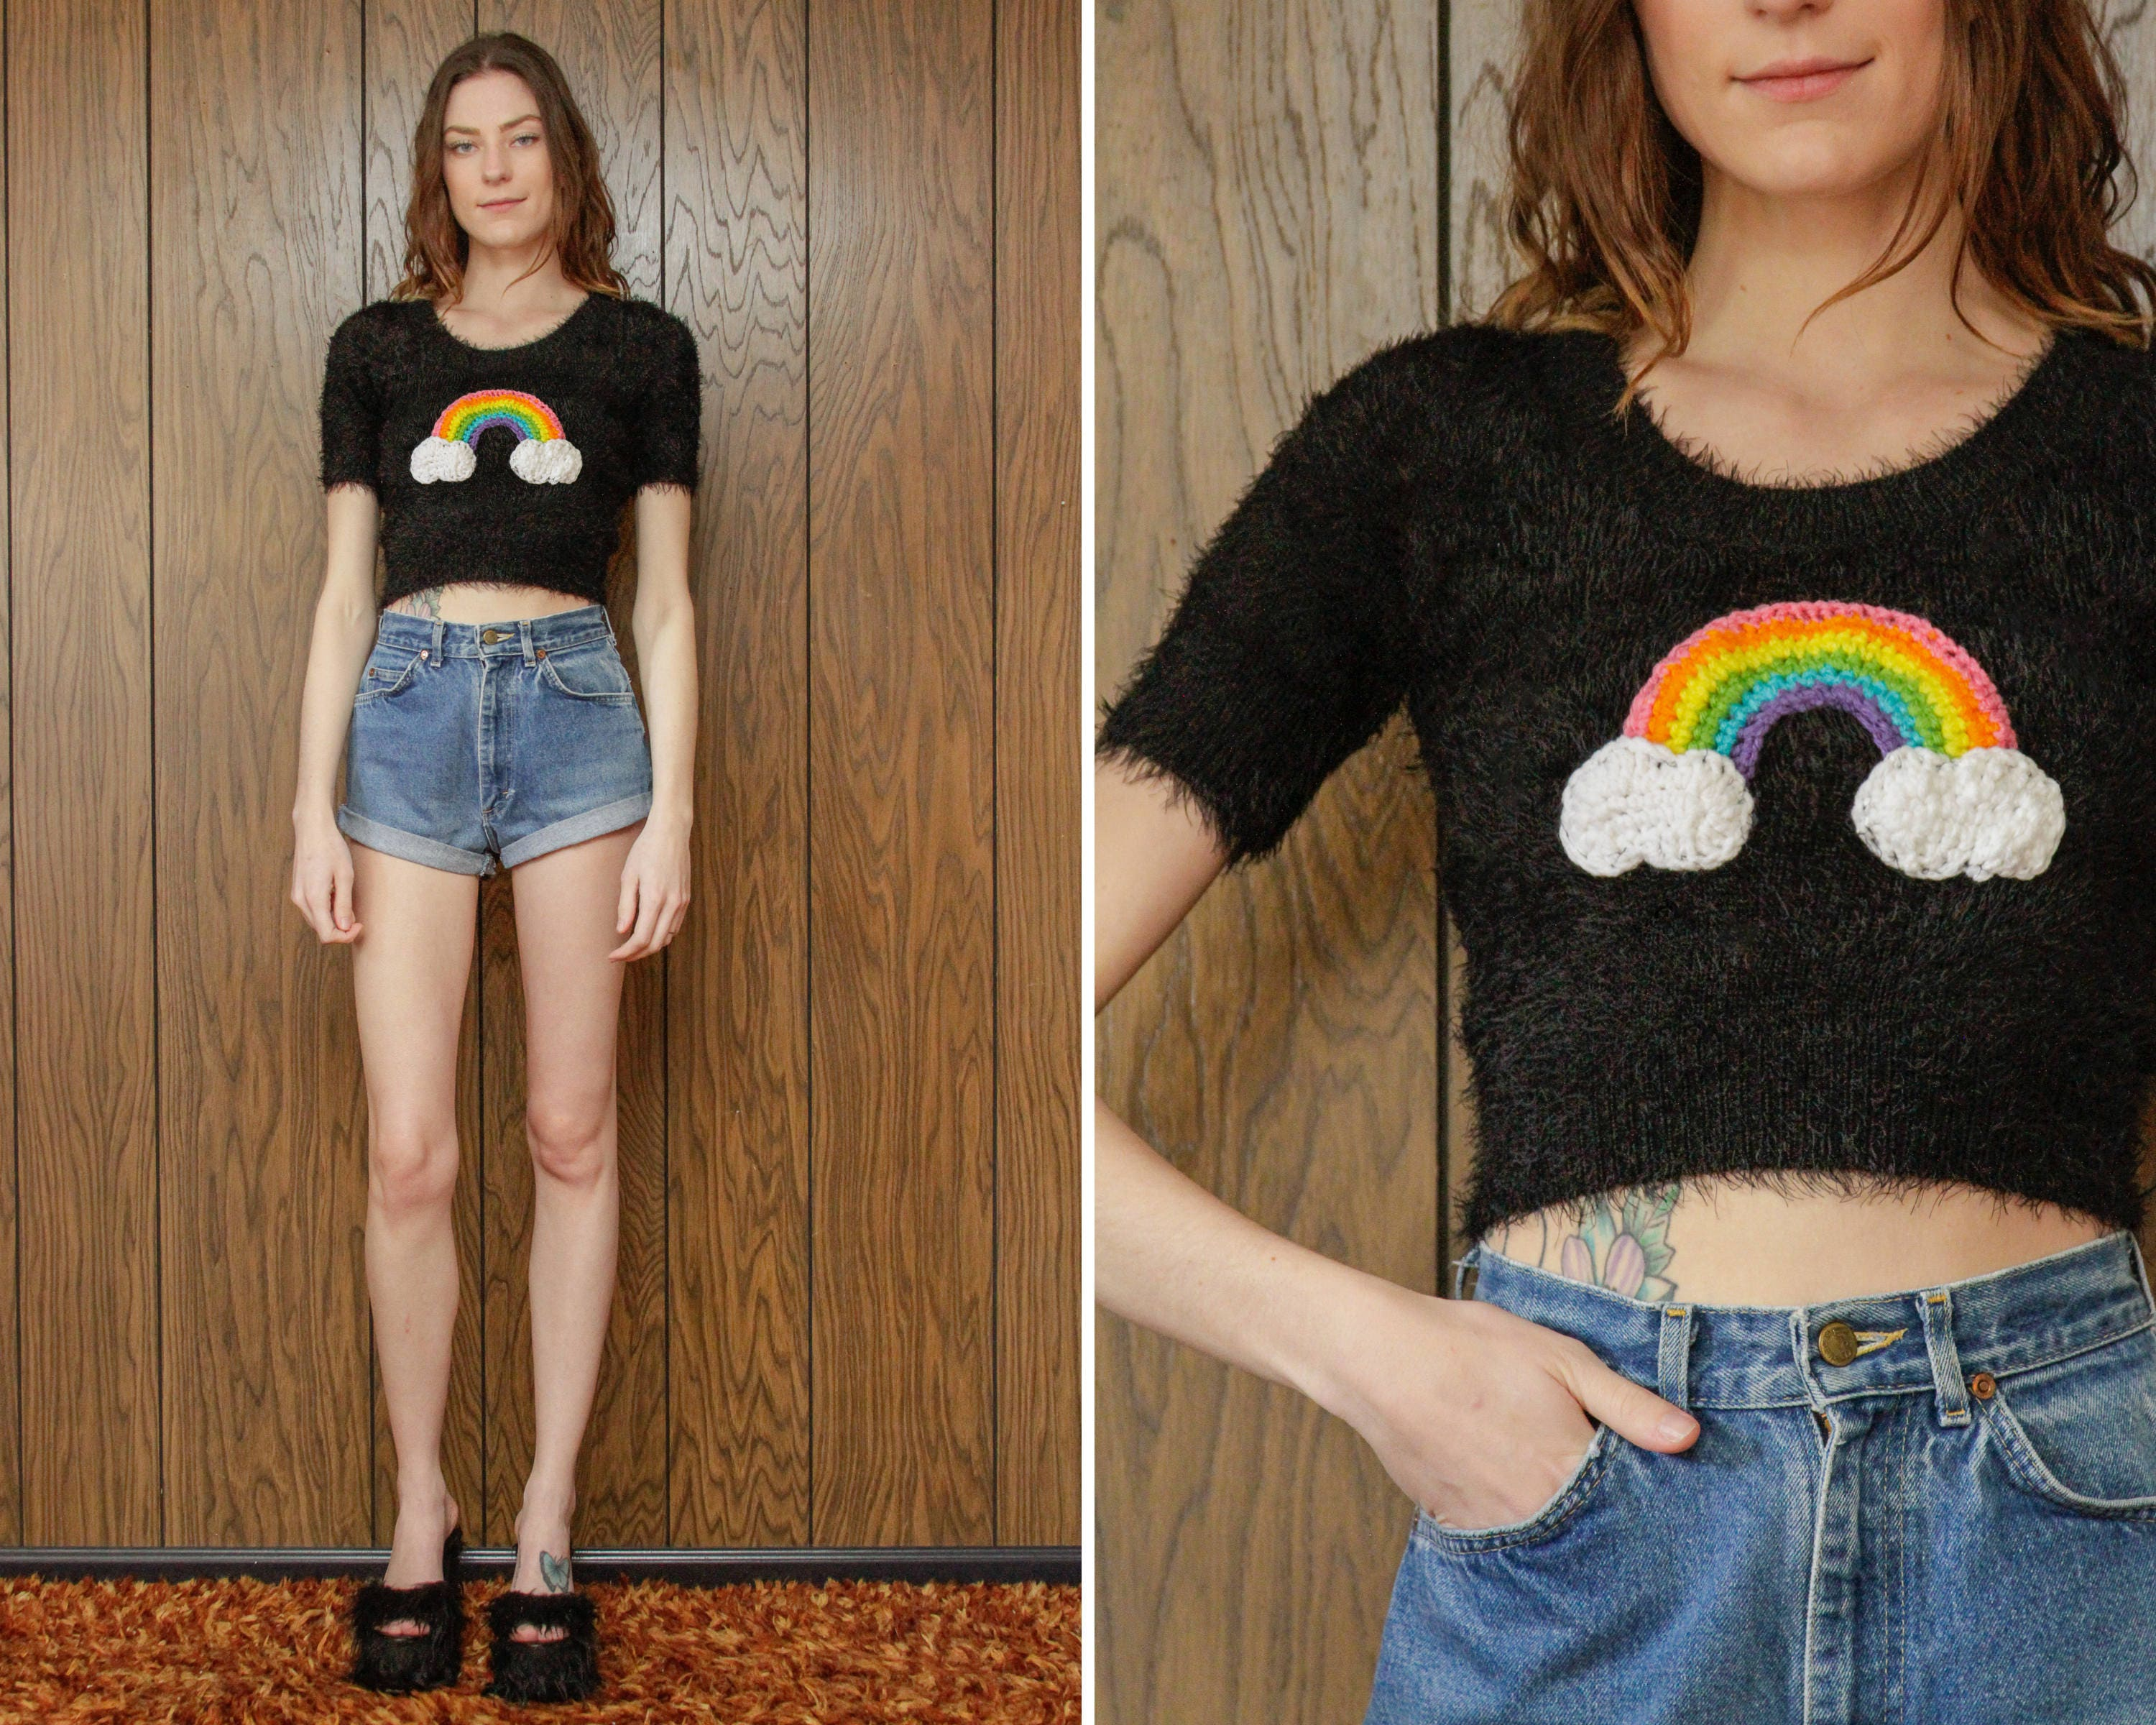 85bbece1918cc Up-cycled Deadstock Black Fuzzy Furry Crochet Pastel Rainbow Clouds Patch  Striped Pride Gay LGBTQ Stripe Short Sleeve Crop Top Sweater S M L